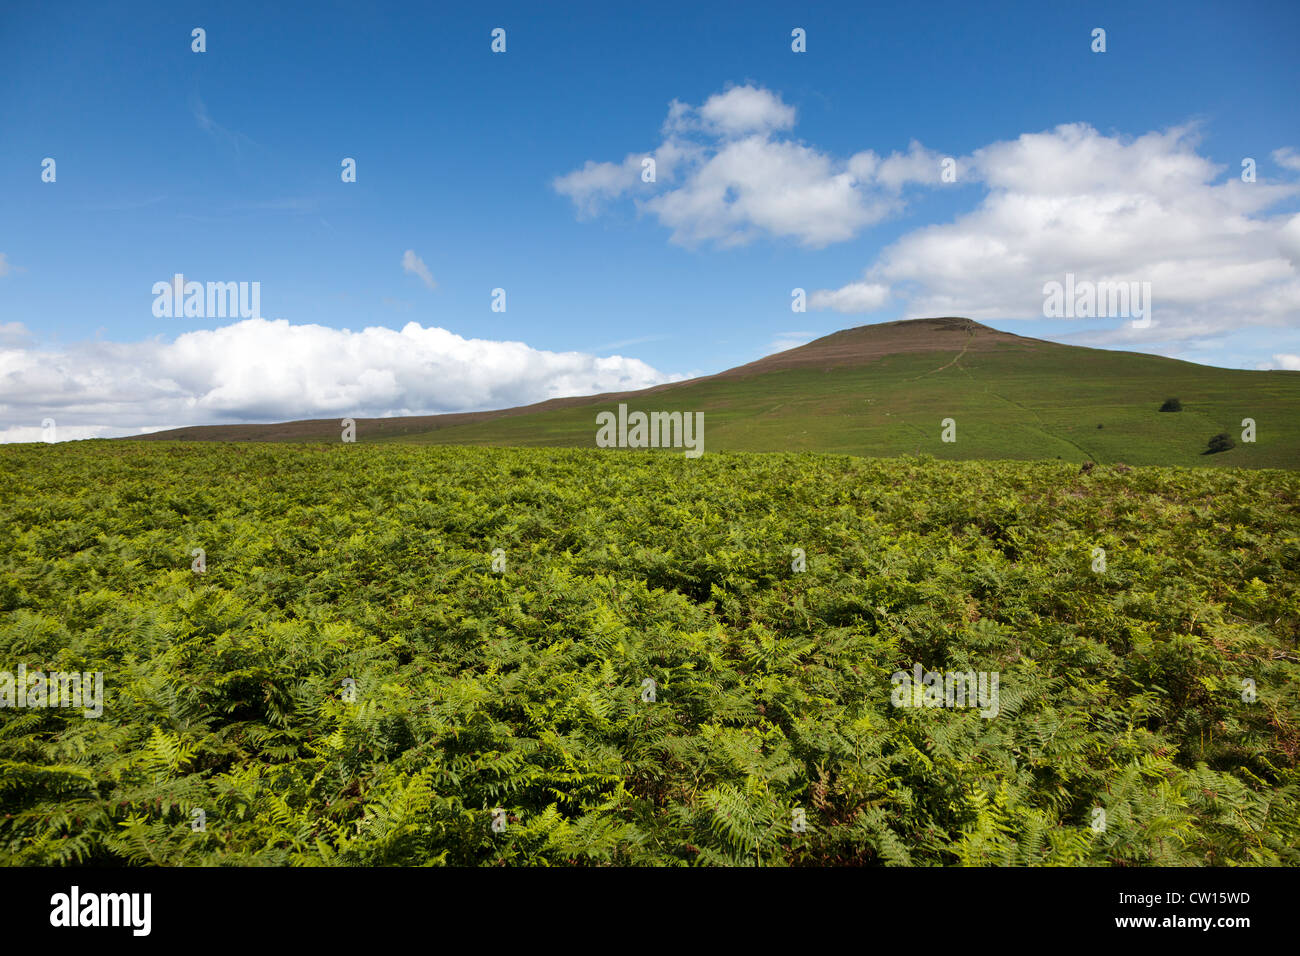 Bracken (Pteridium) growing on the slopes of the Sugar Loaf mountain, Abergavenny, Wales, UK - Stock Image